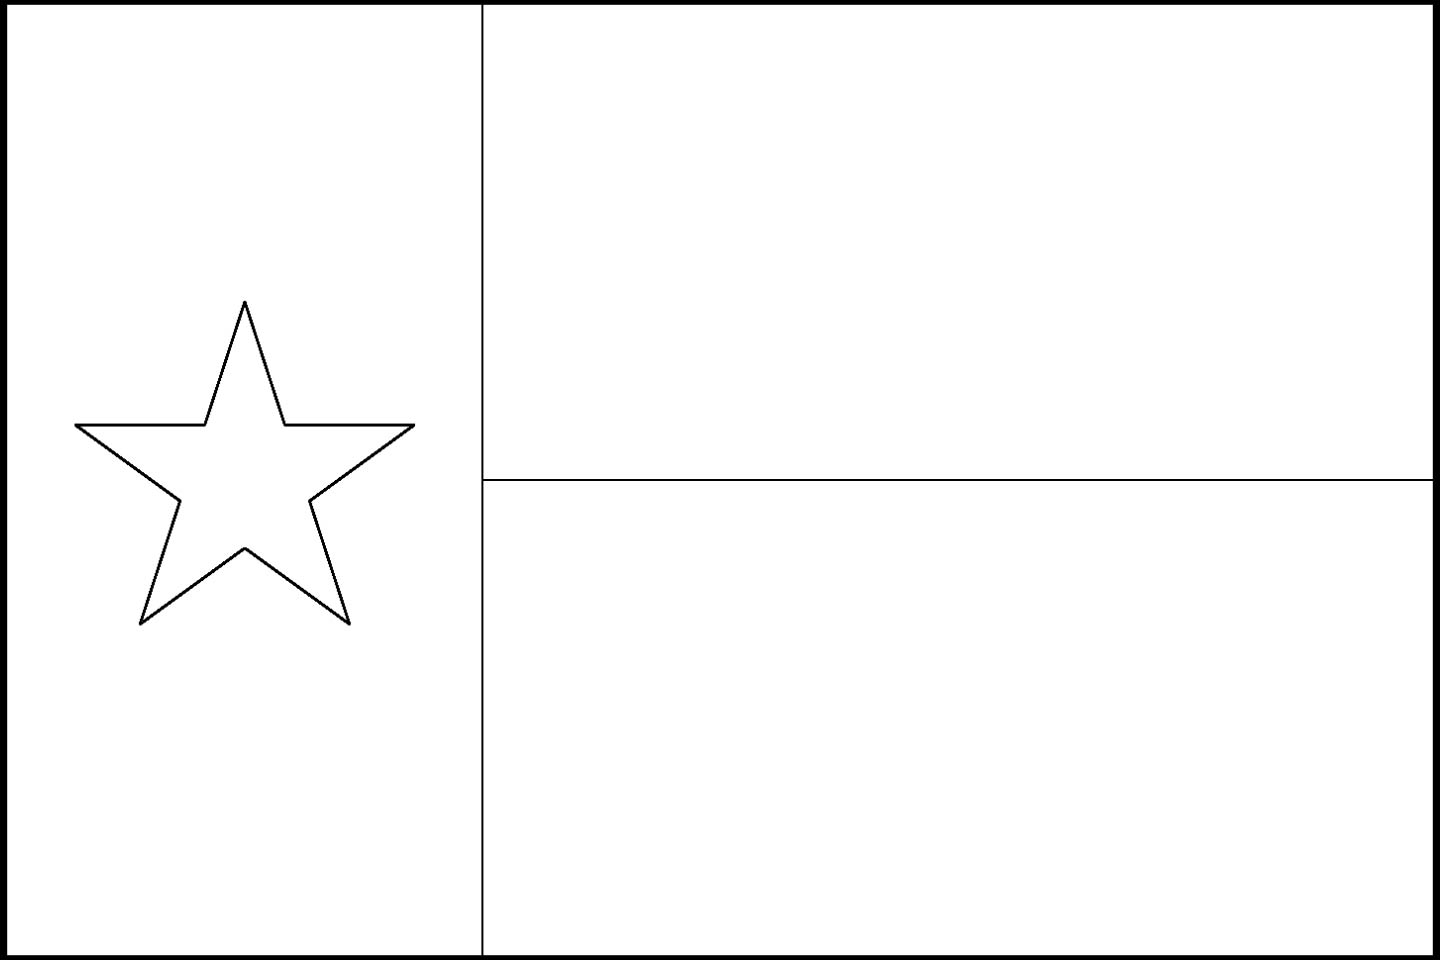 27 Texas Flag Coloring Page Compilation | FREE COLORING PAGES - Part 3